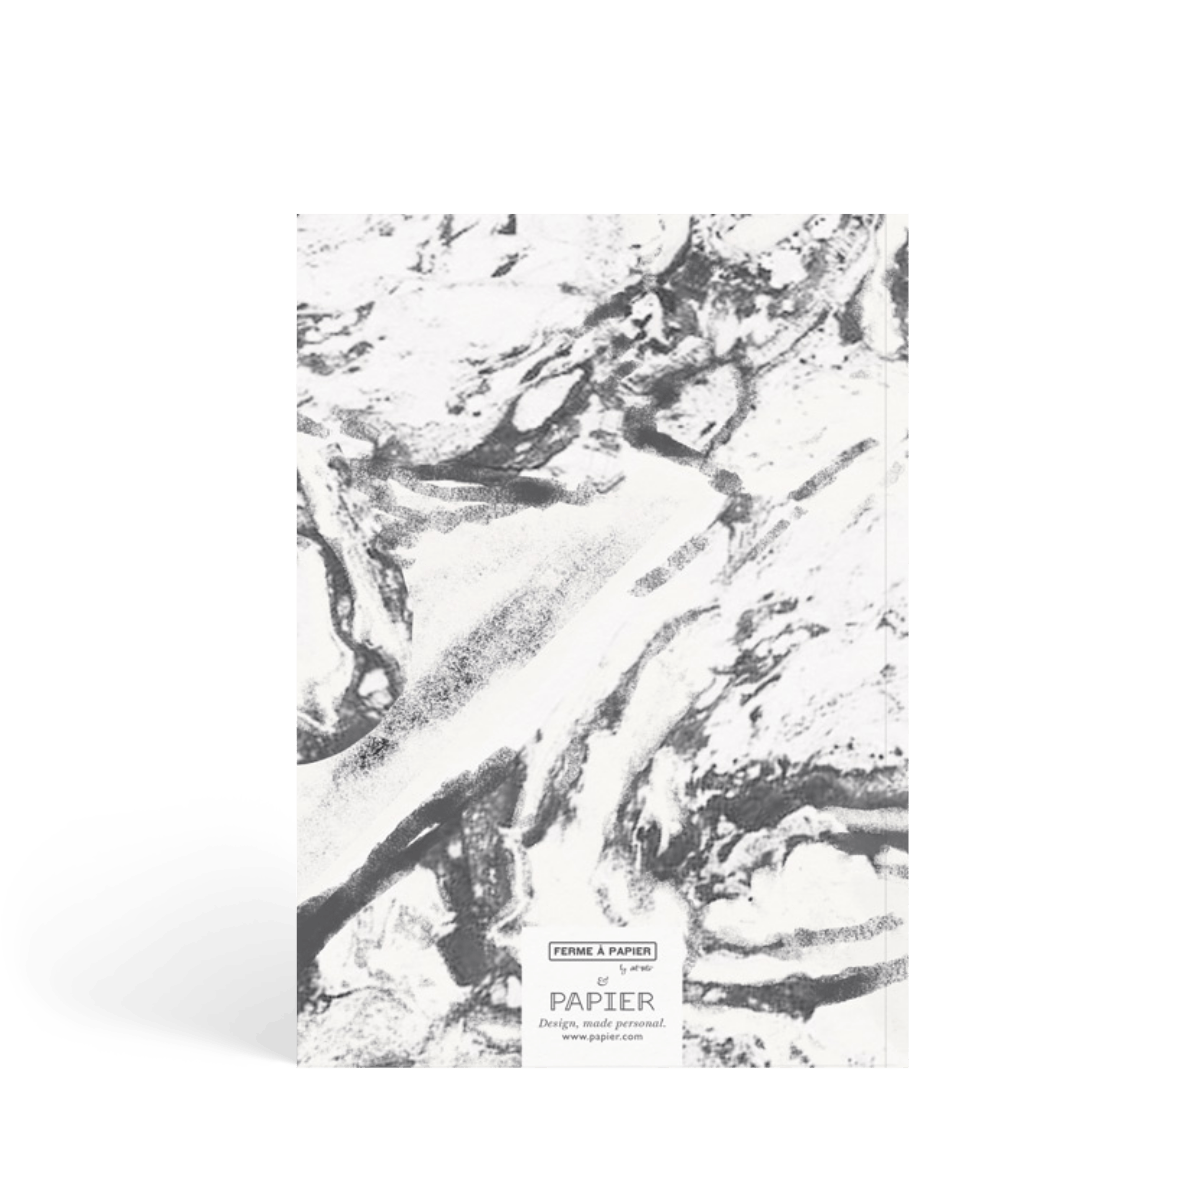 Https%3a%2f%2fwww.papier.com%2fproduct image%2f50743%2f5%2fwhite marble 12422 back 1539957660.png?ixlib=rb 1.1